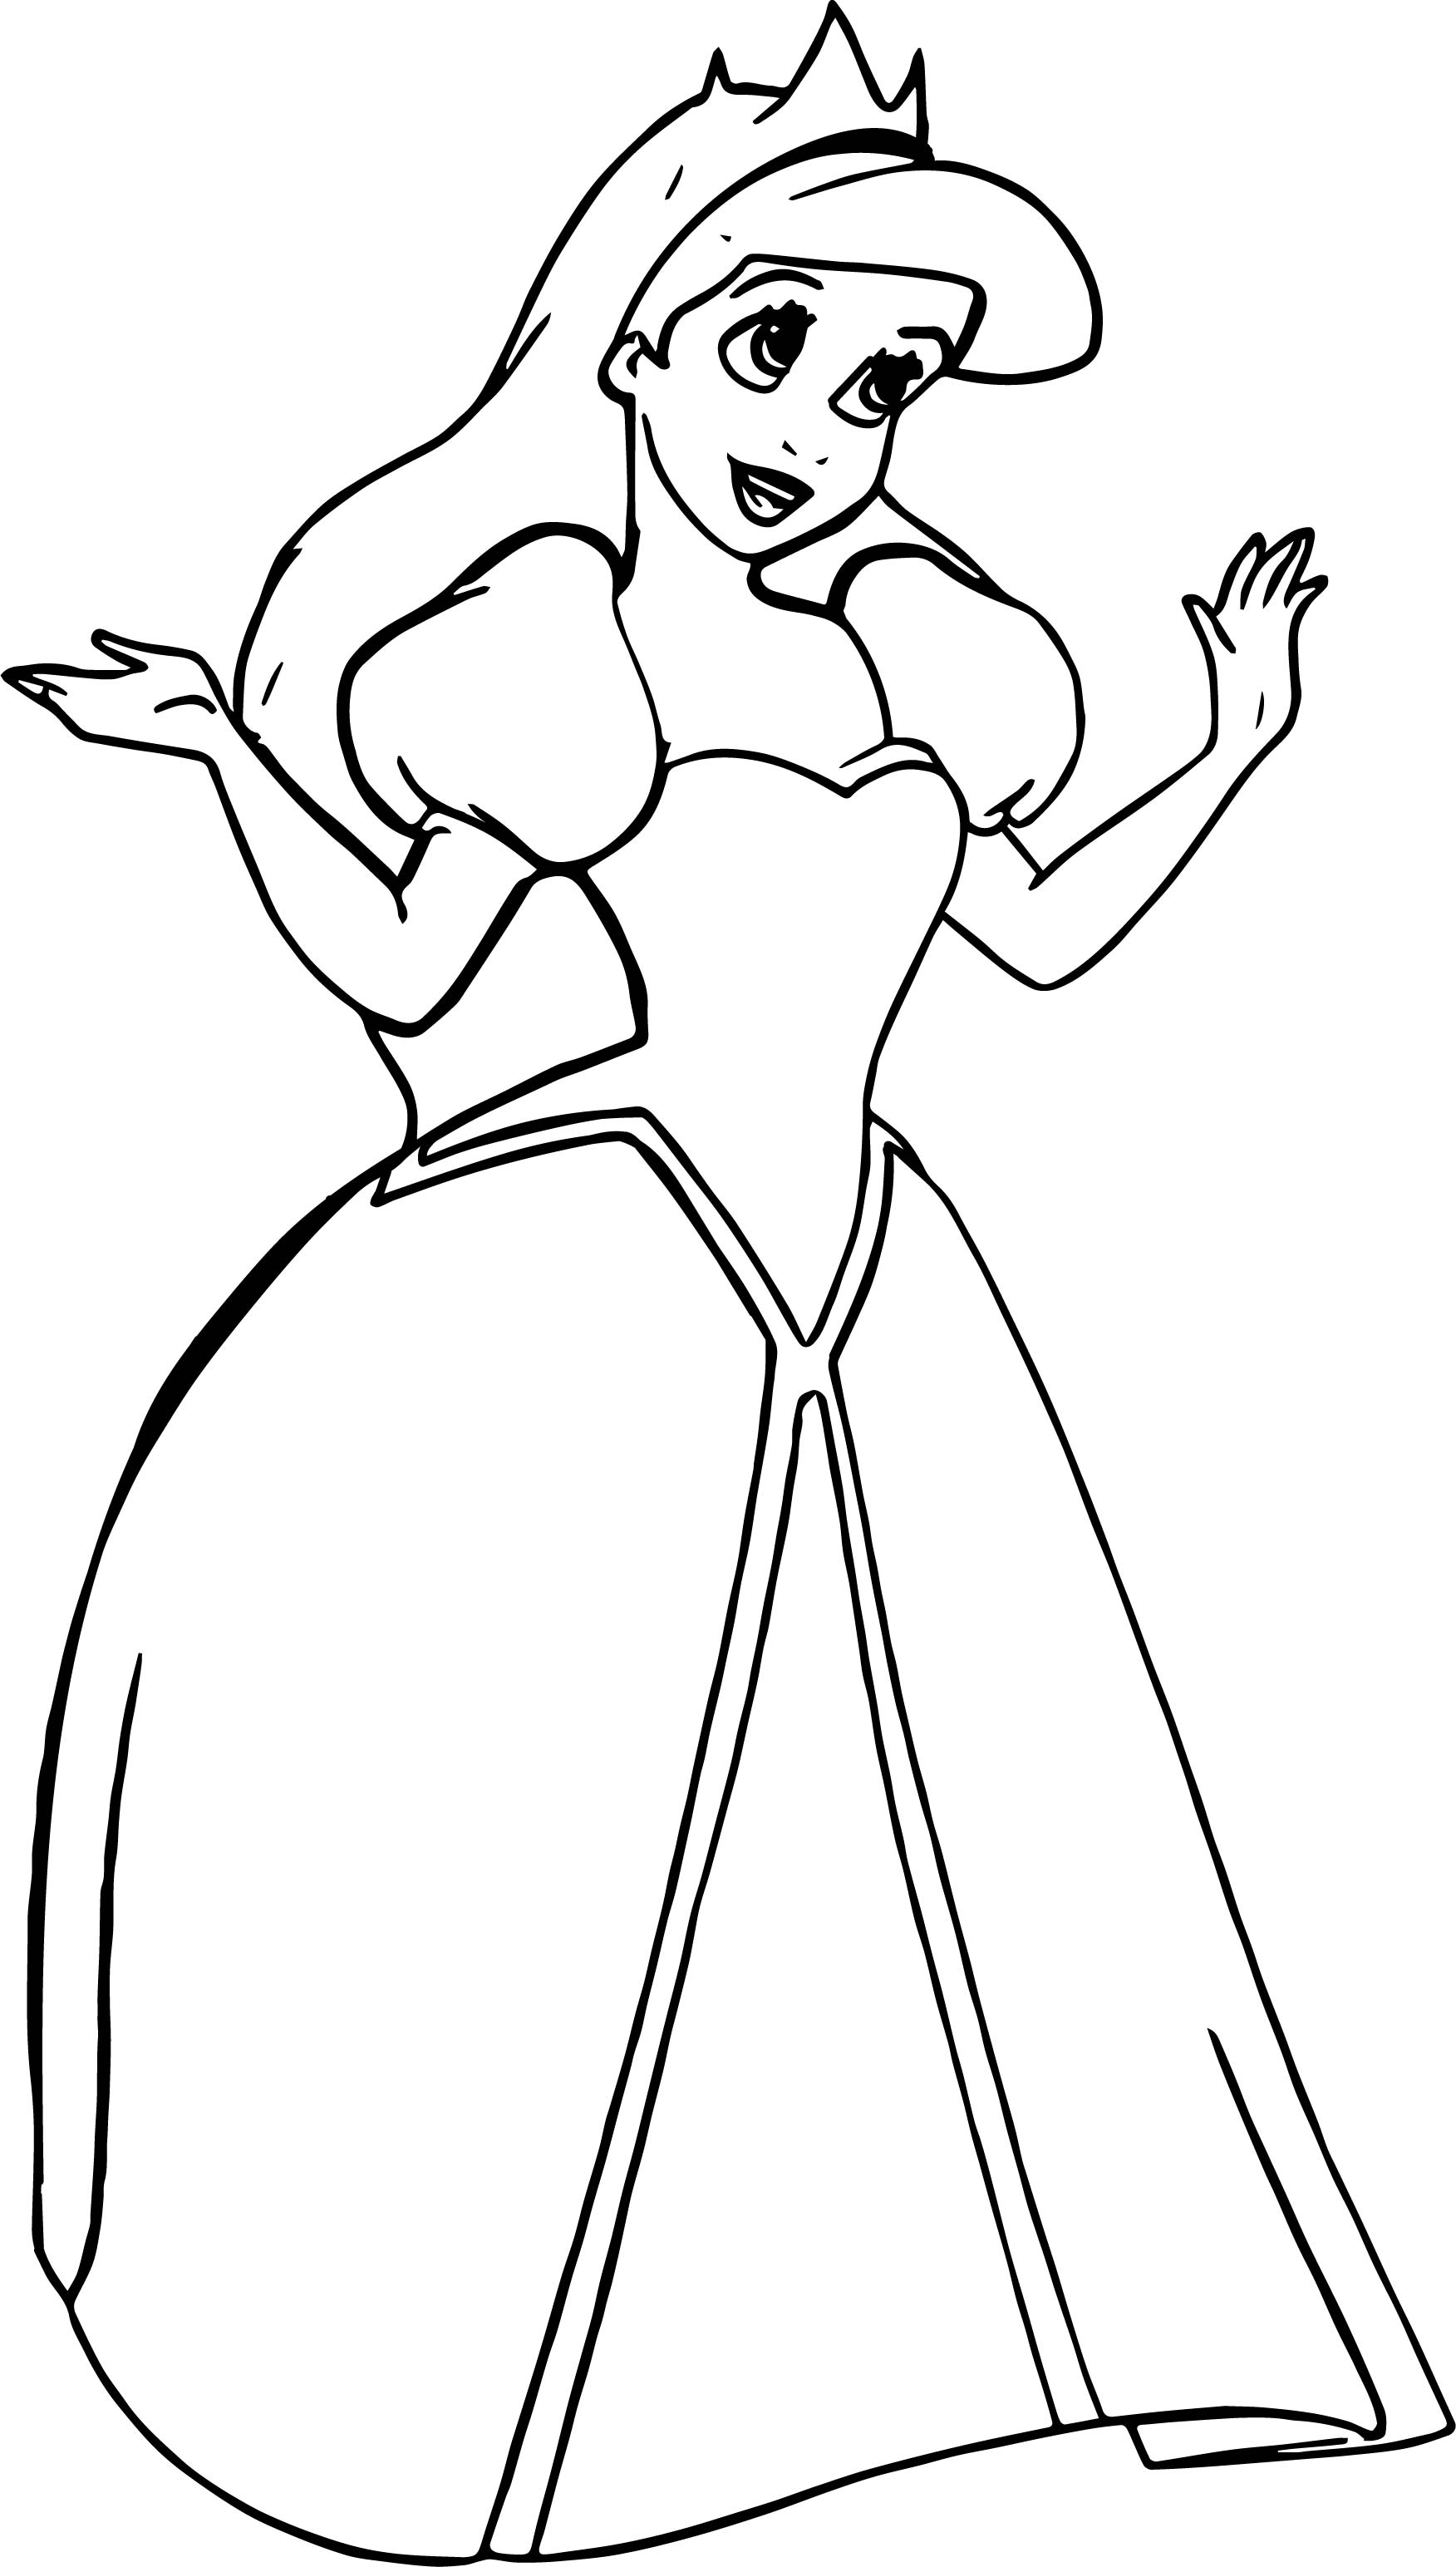 1752x3088 Ariel Coloring Pages The Little Mermaid Coloring Pages Ariel